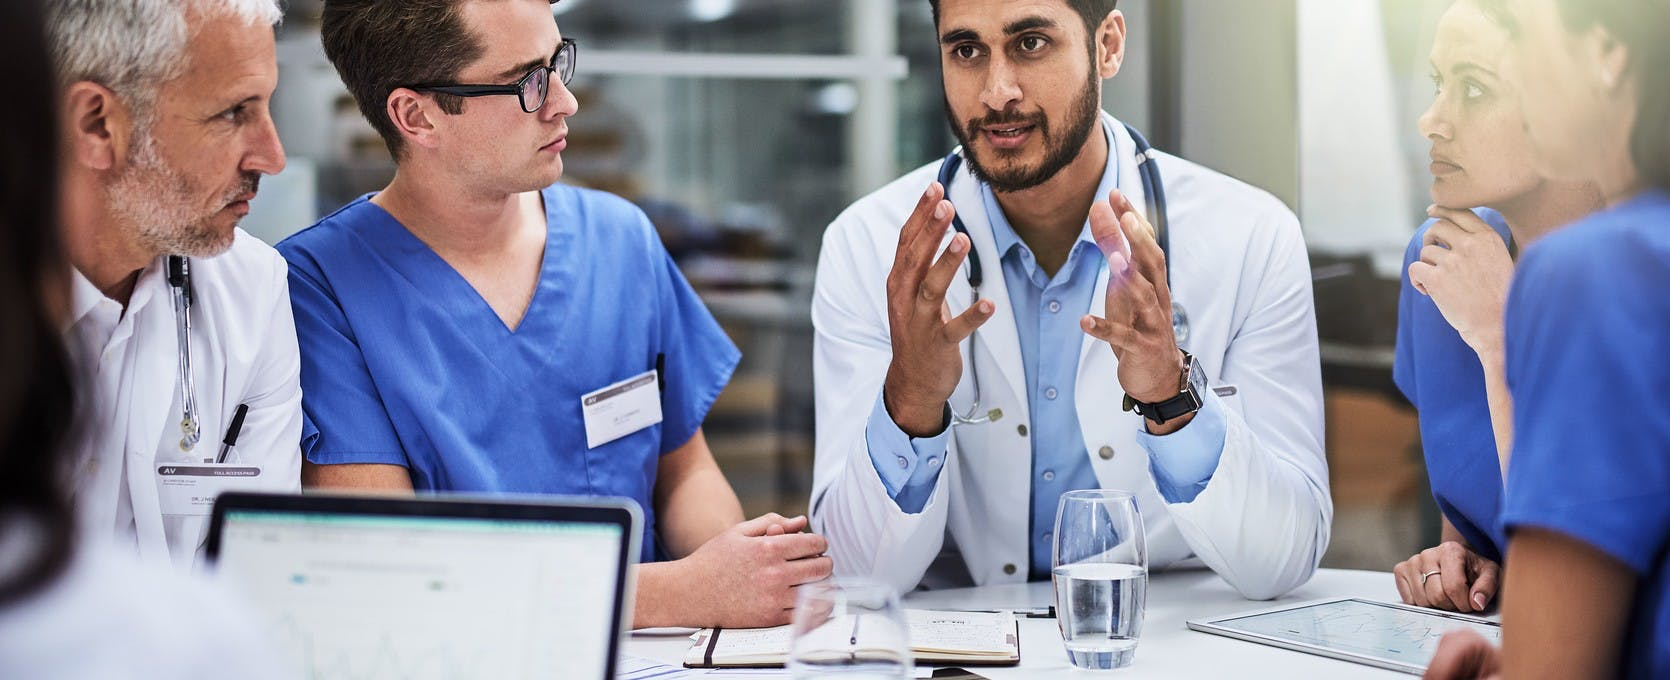 Healthcare professionals consult on patient care